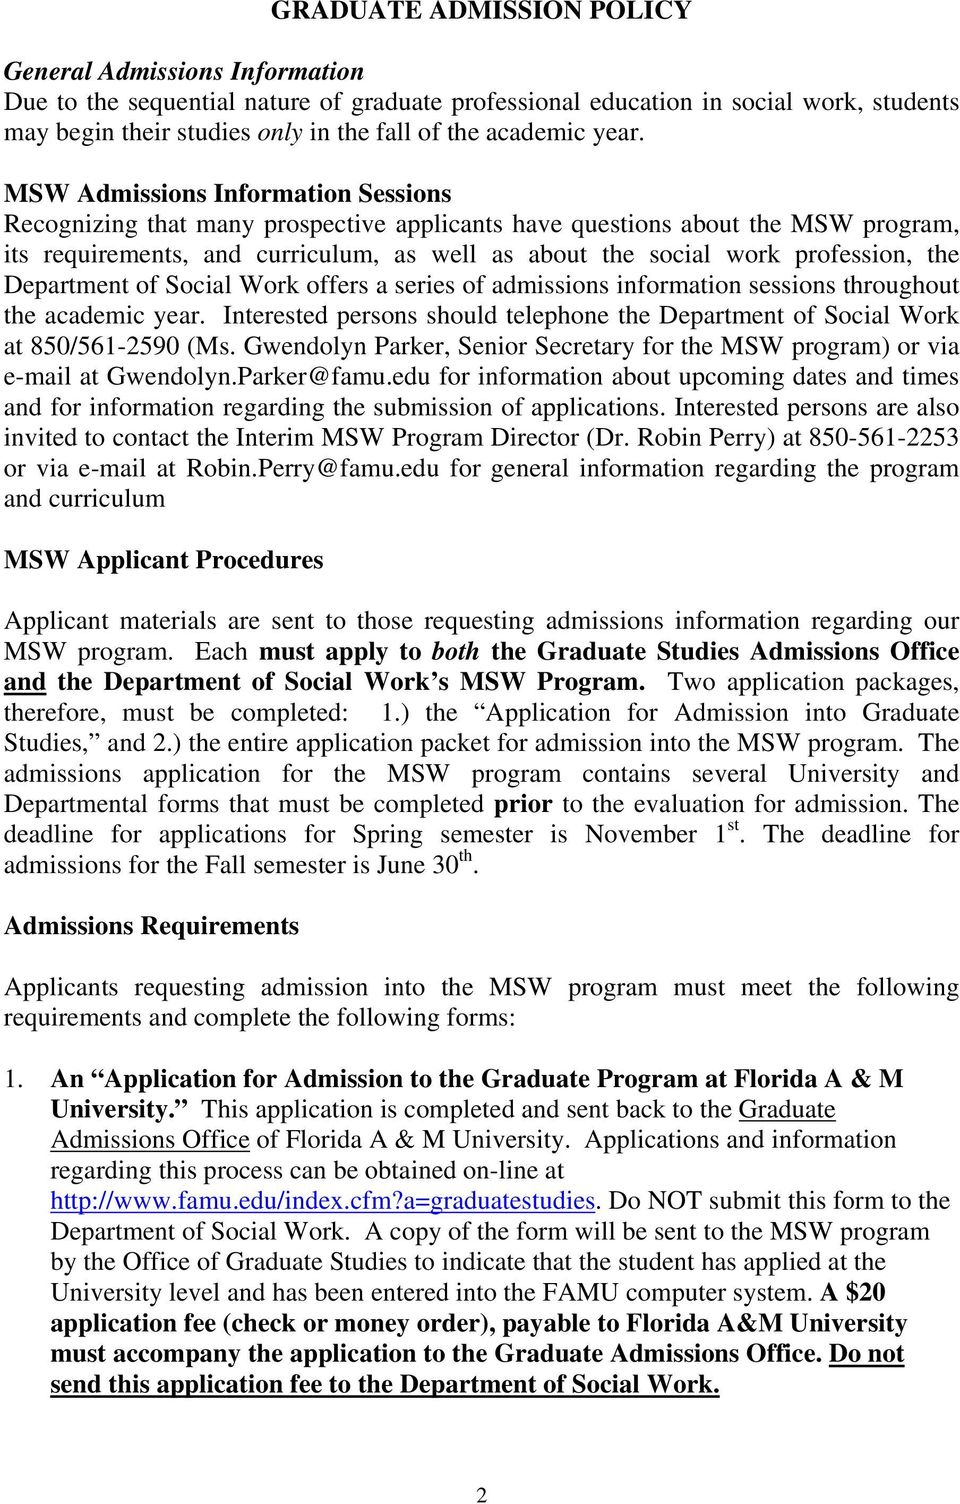 MSW Admissions Information Sessions Recognizing that many prospective applicants have questions about the MSW program, its requirements, and curriculum, as well as about the social work profession,